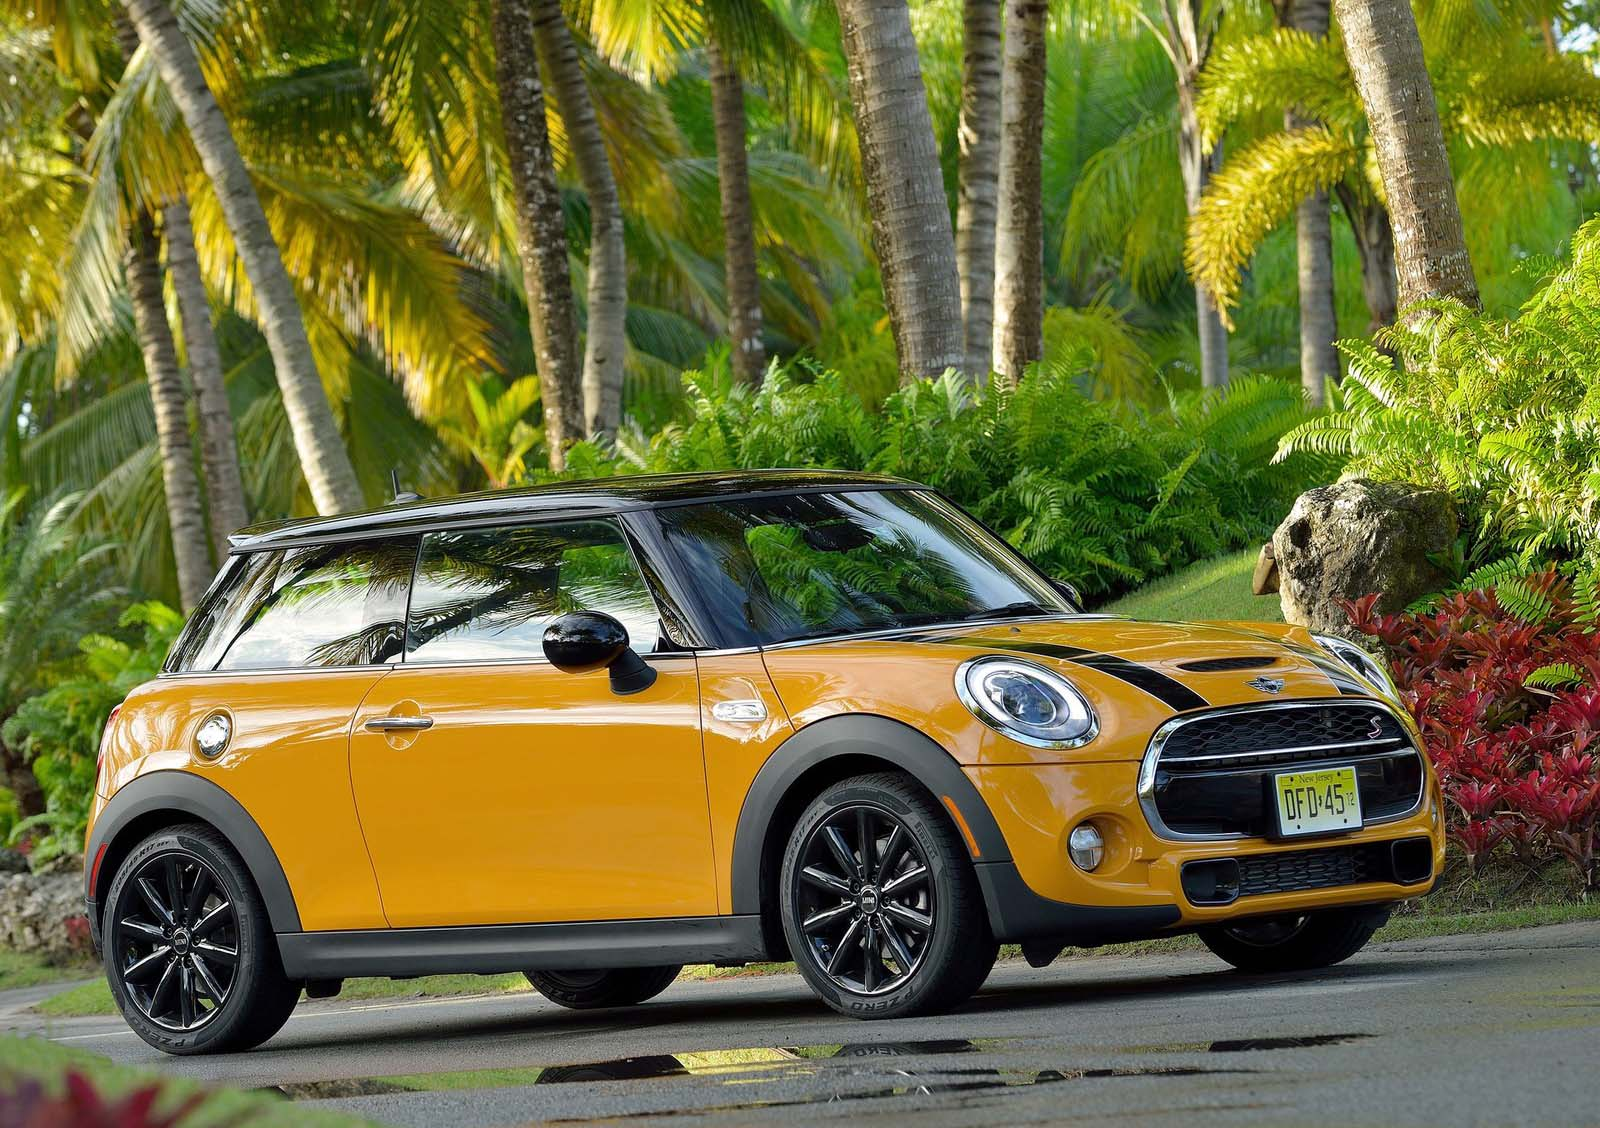 Mini Cooper 2015 Wallpapers 1600x1128